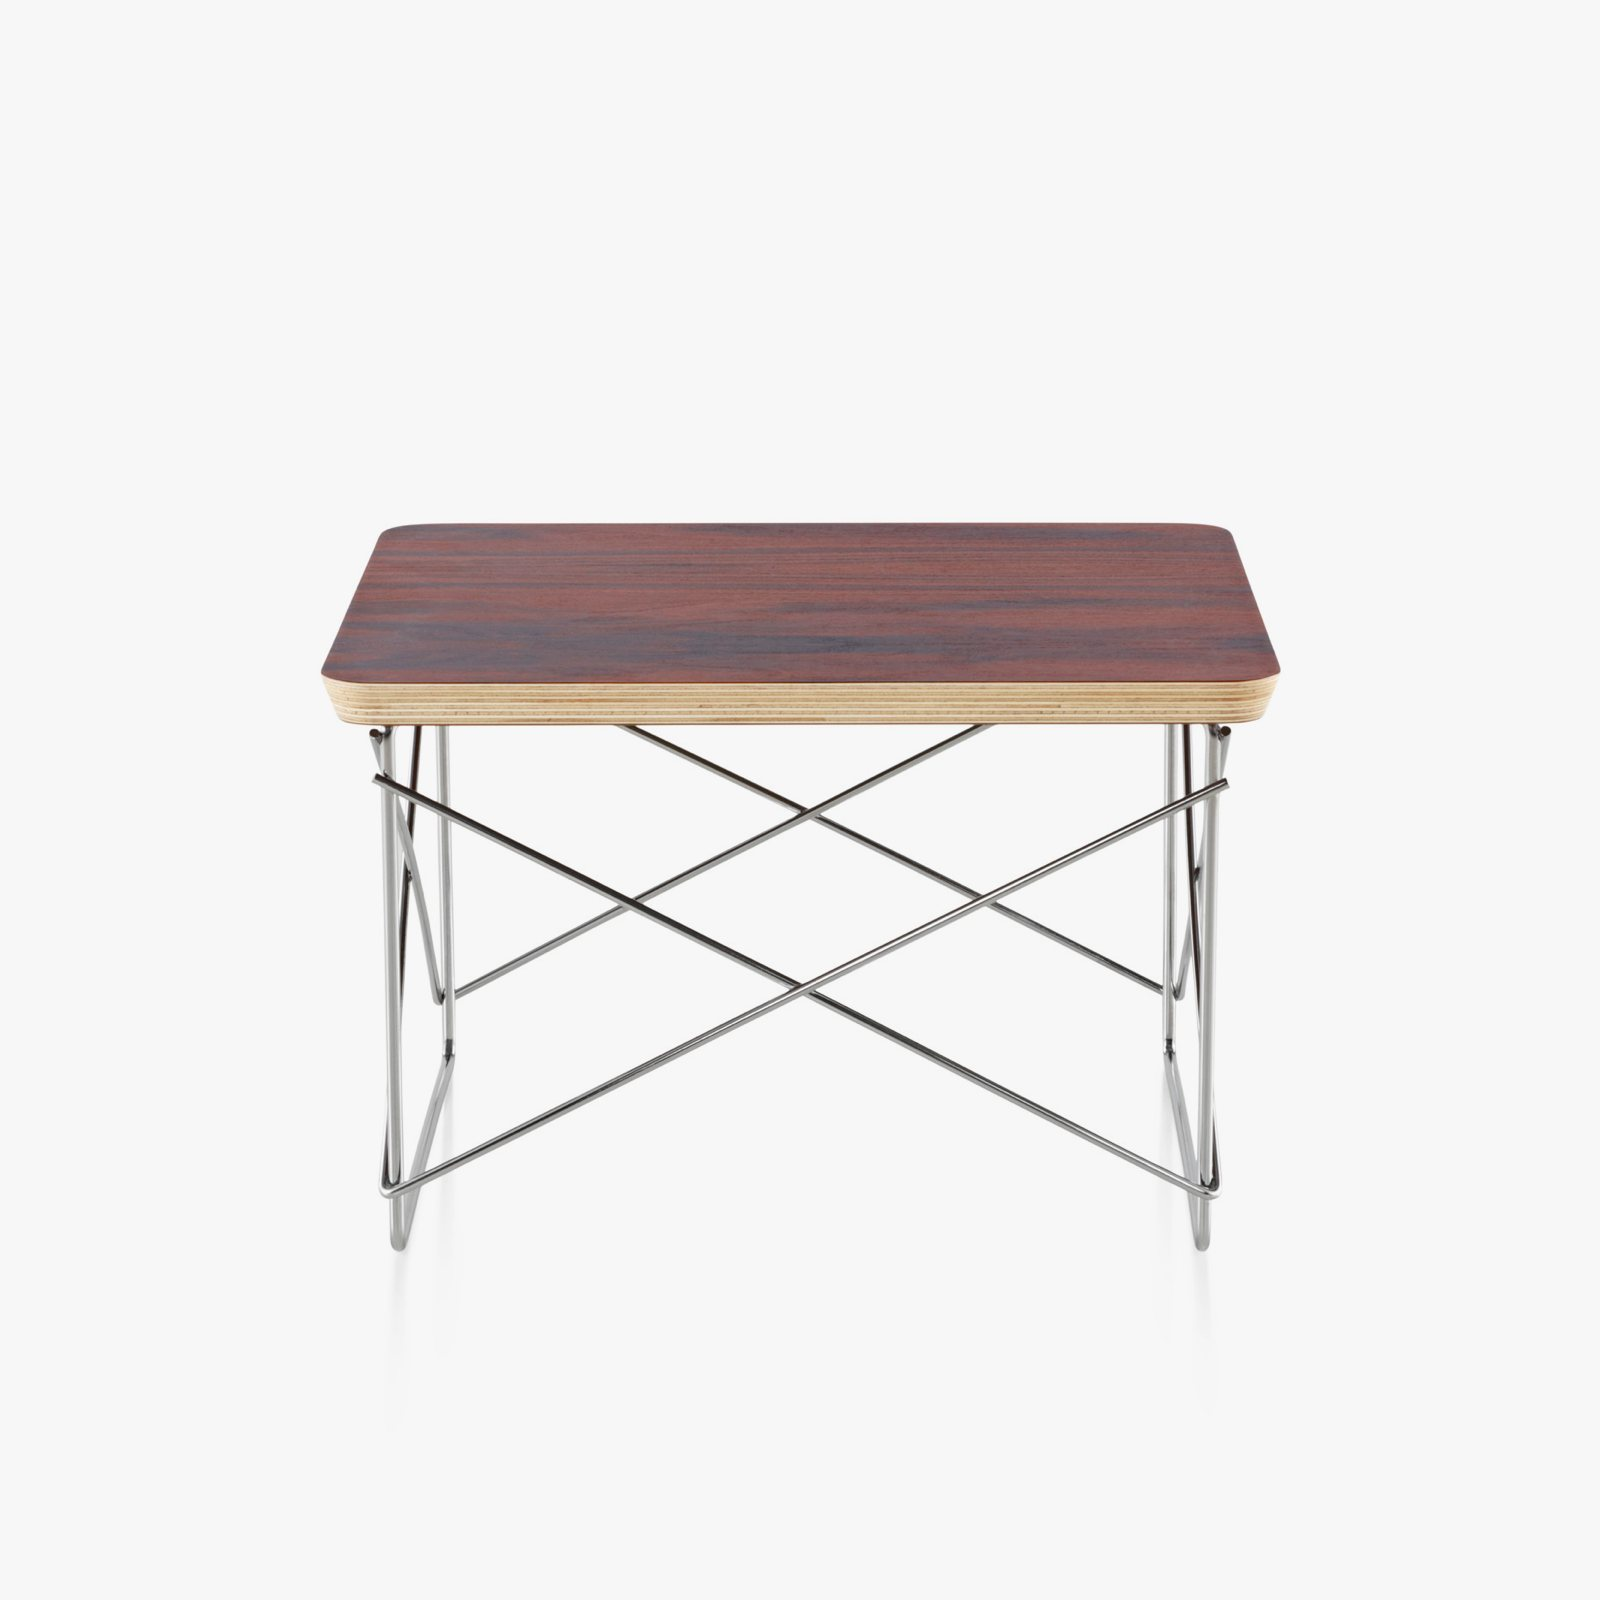 Eames wire base low table by charles ray eames for herman miller eames wire base low table santos palisander top with trivalent chrome base greentooth Gallery